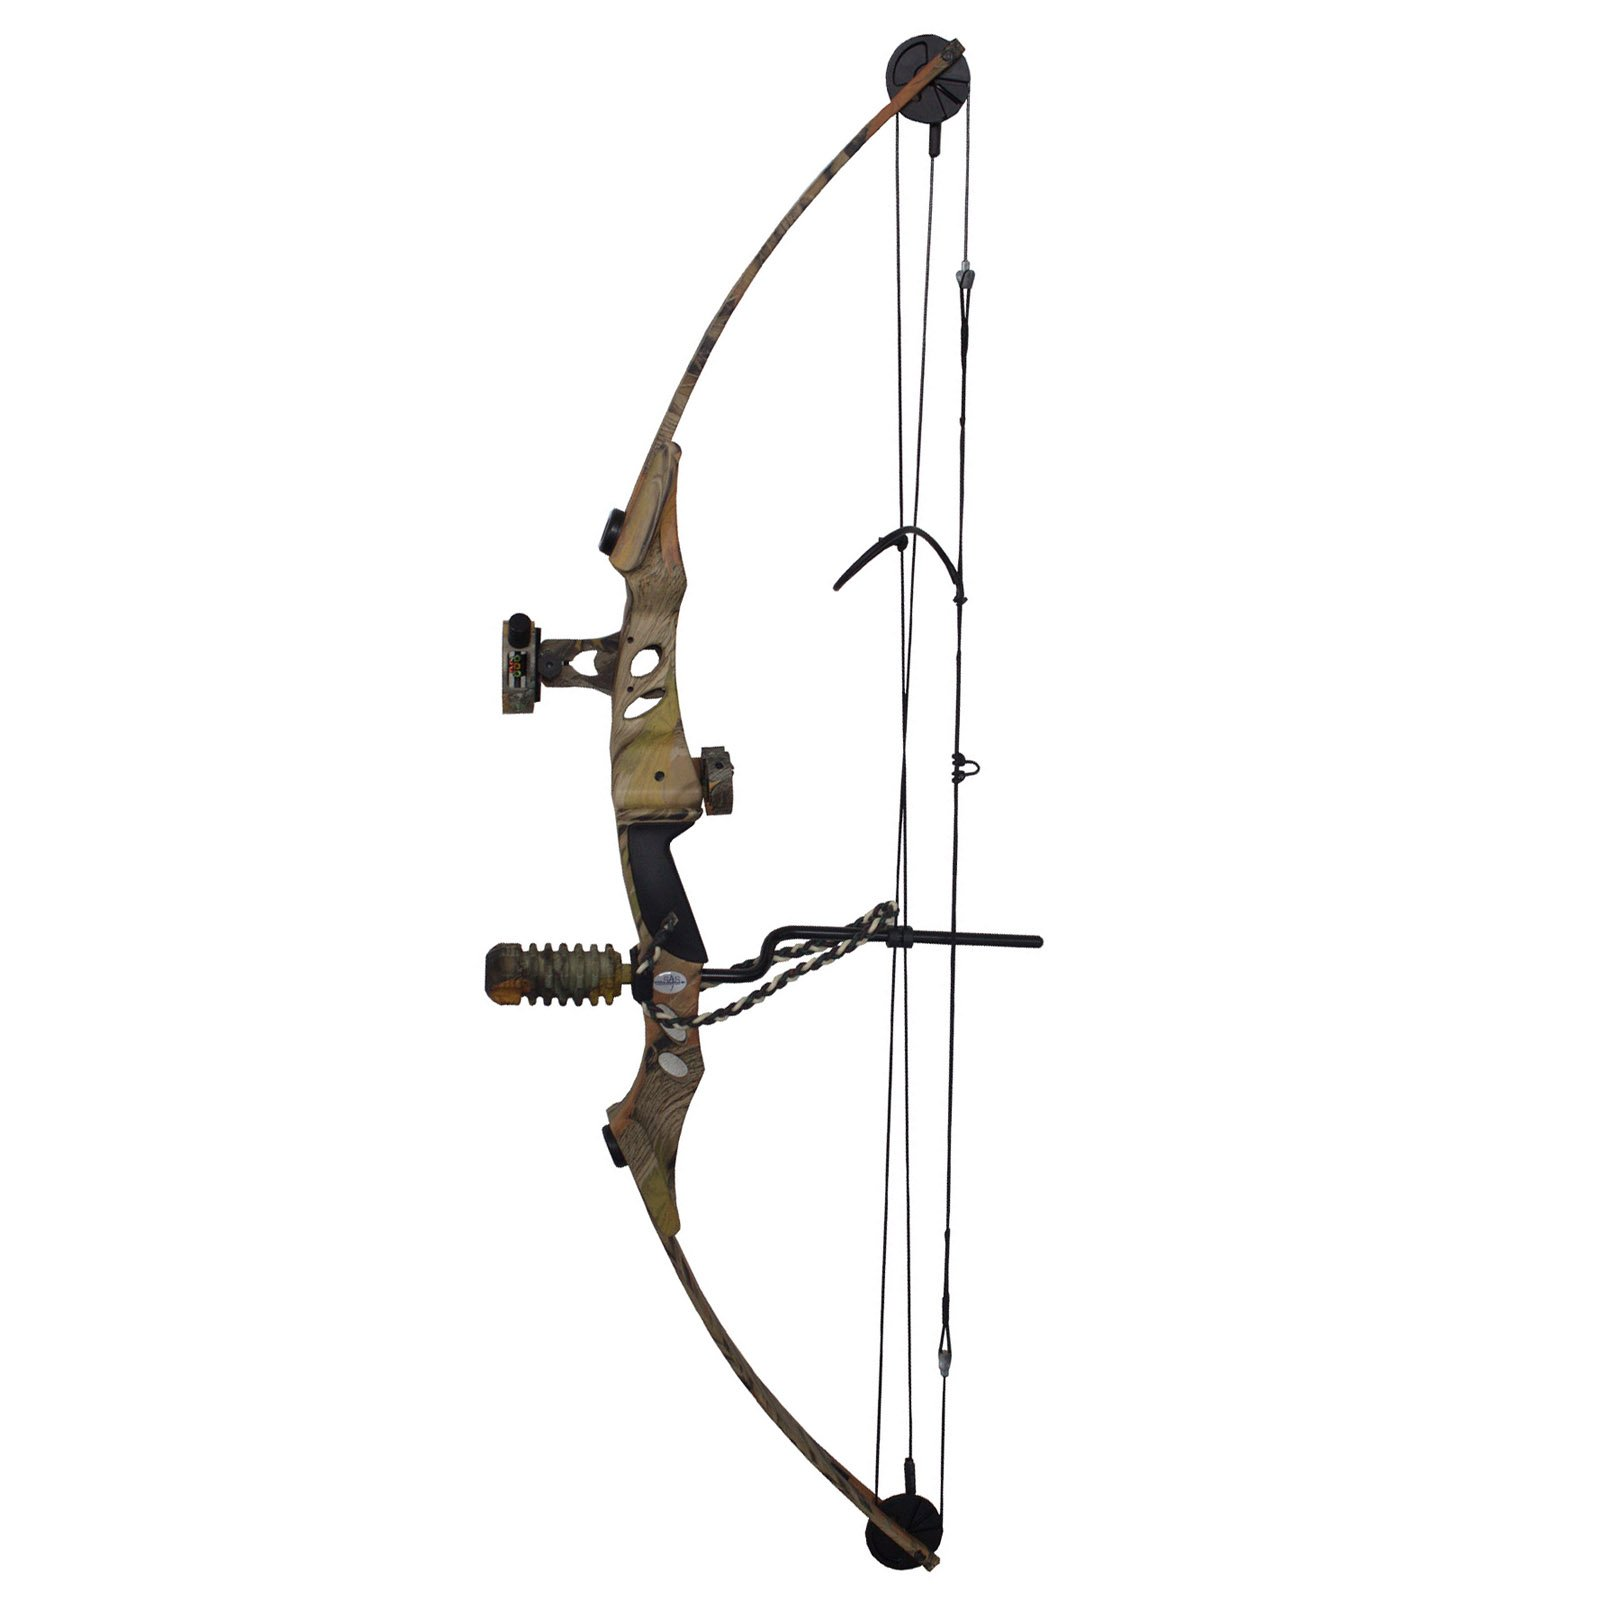 SAS Siege 55 lb Compound Bow Package (Camo with Accessory Package) by Siege